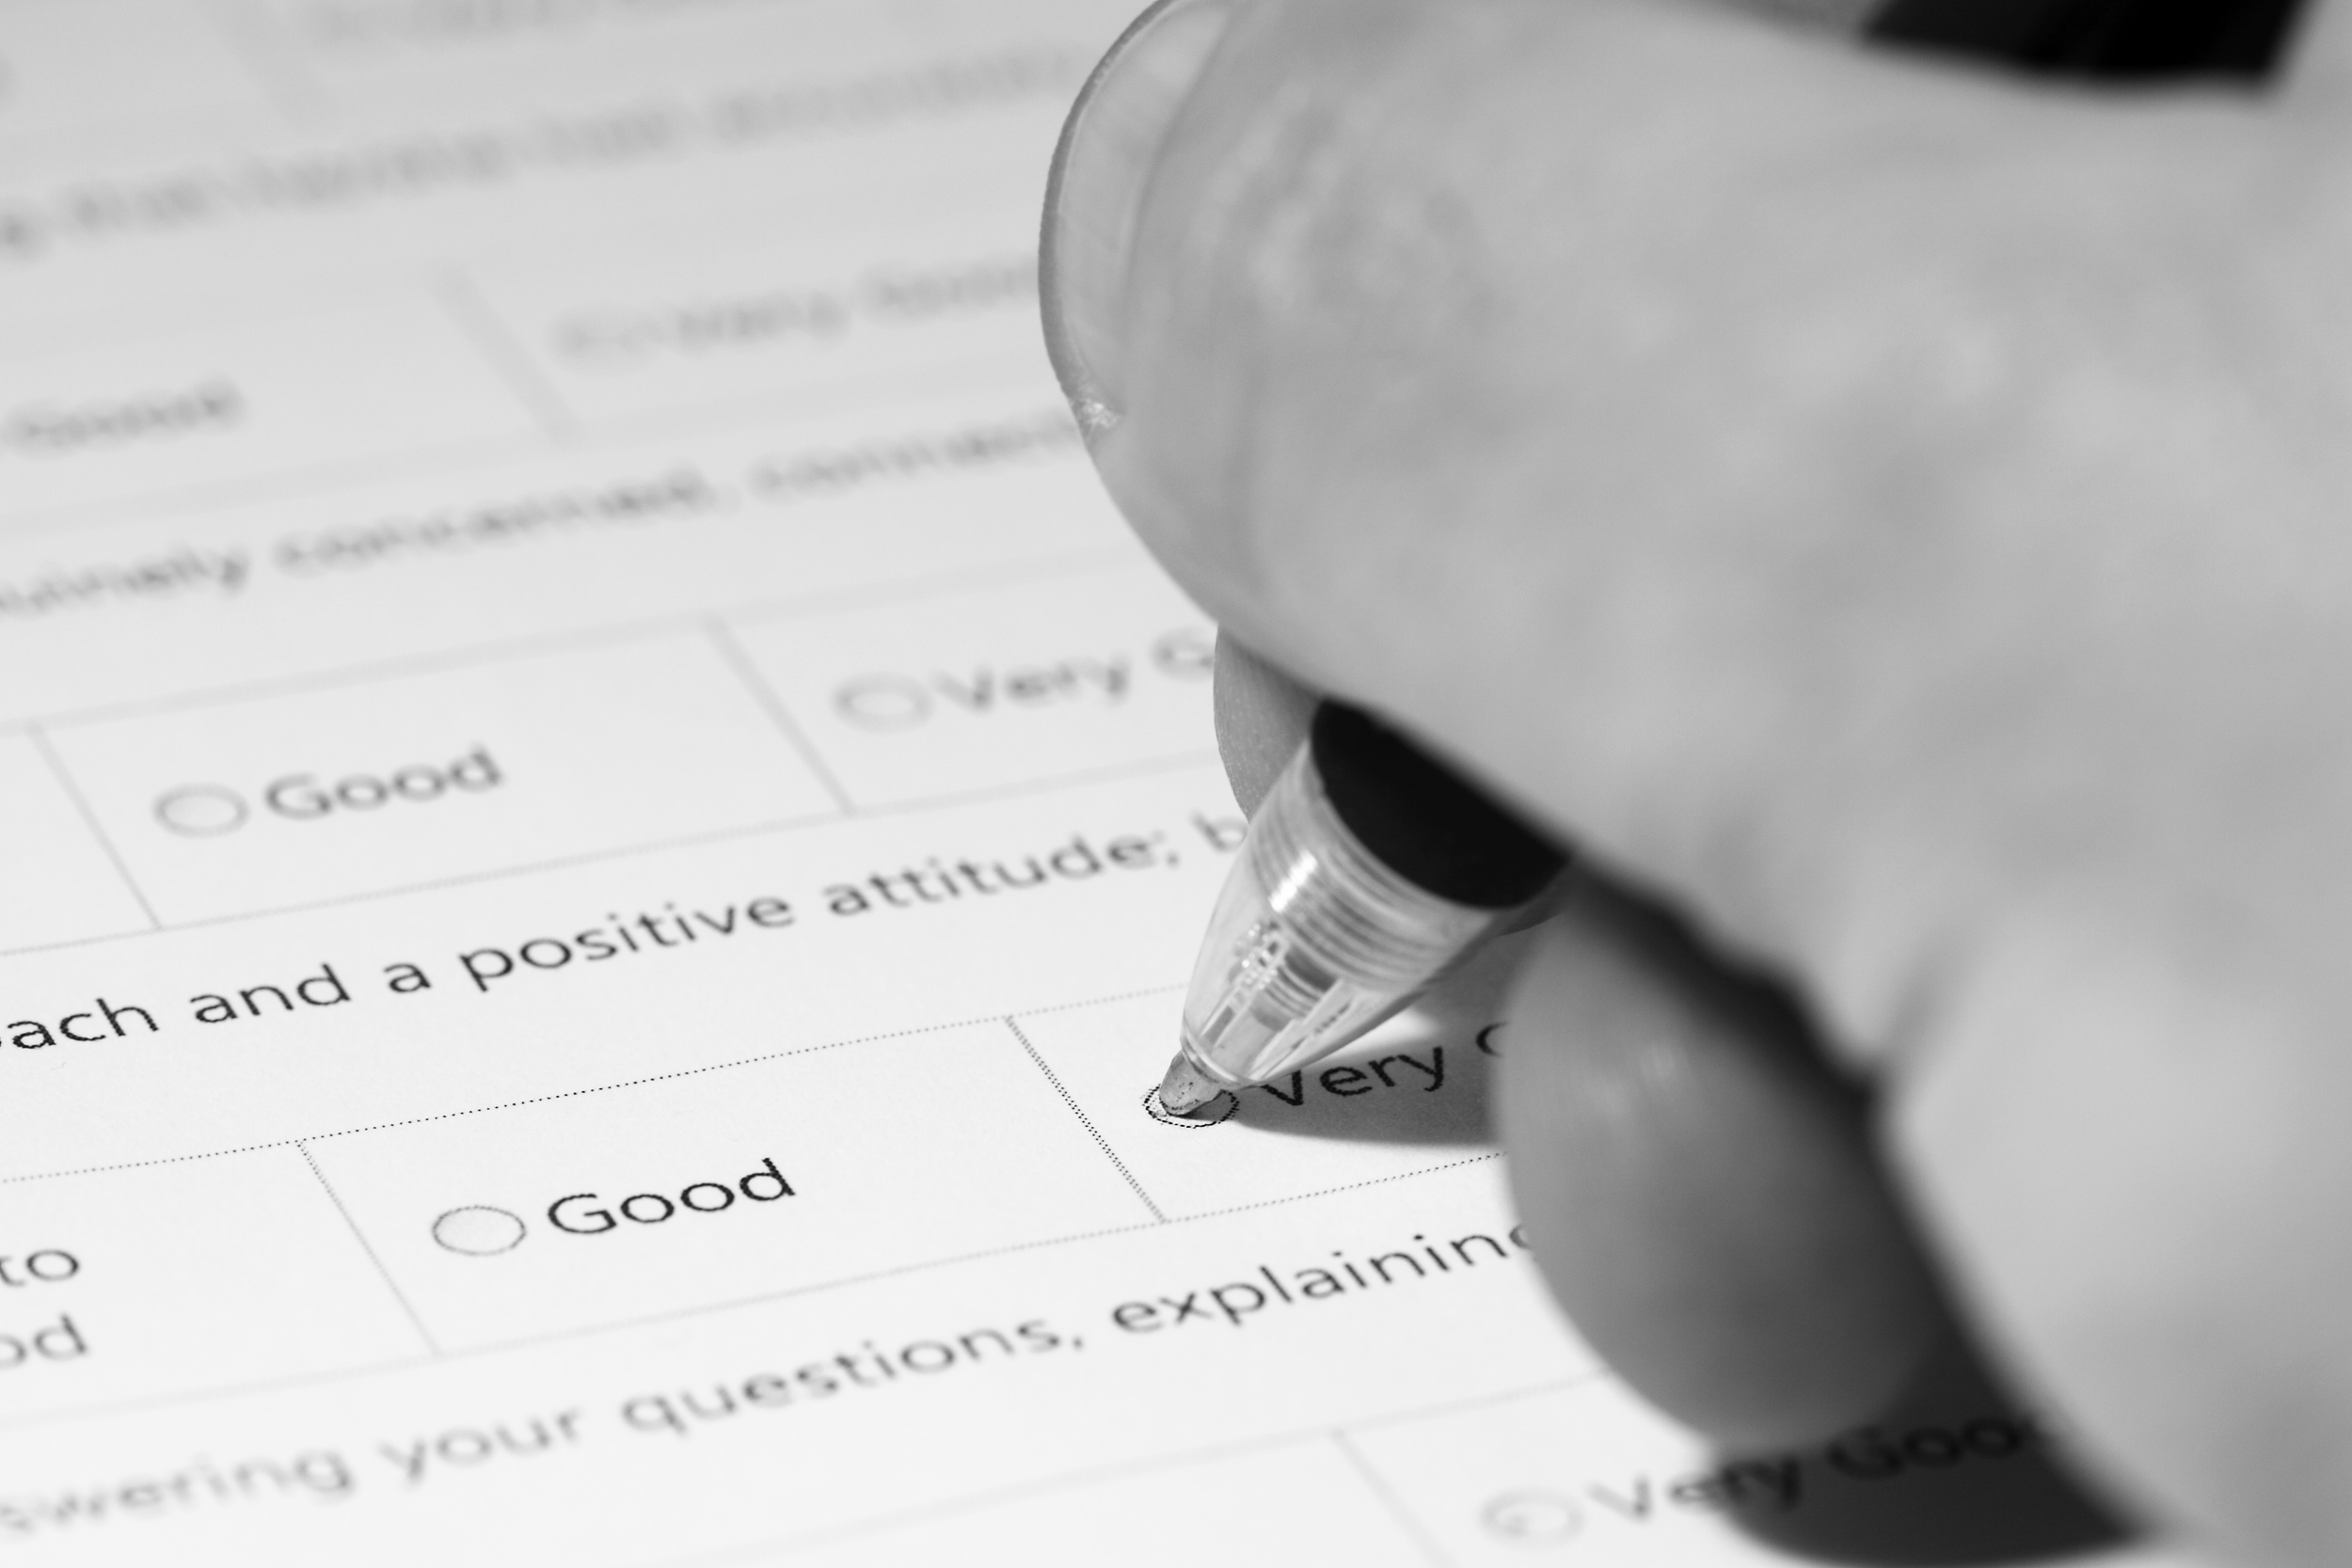 Filling in questionnaire. Man filling in a medical questionnaire.